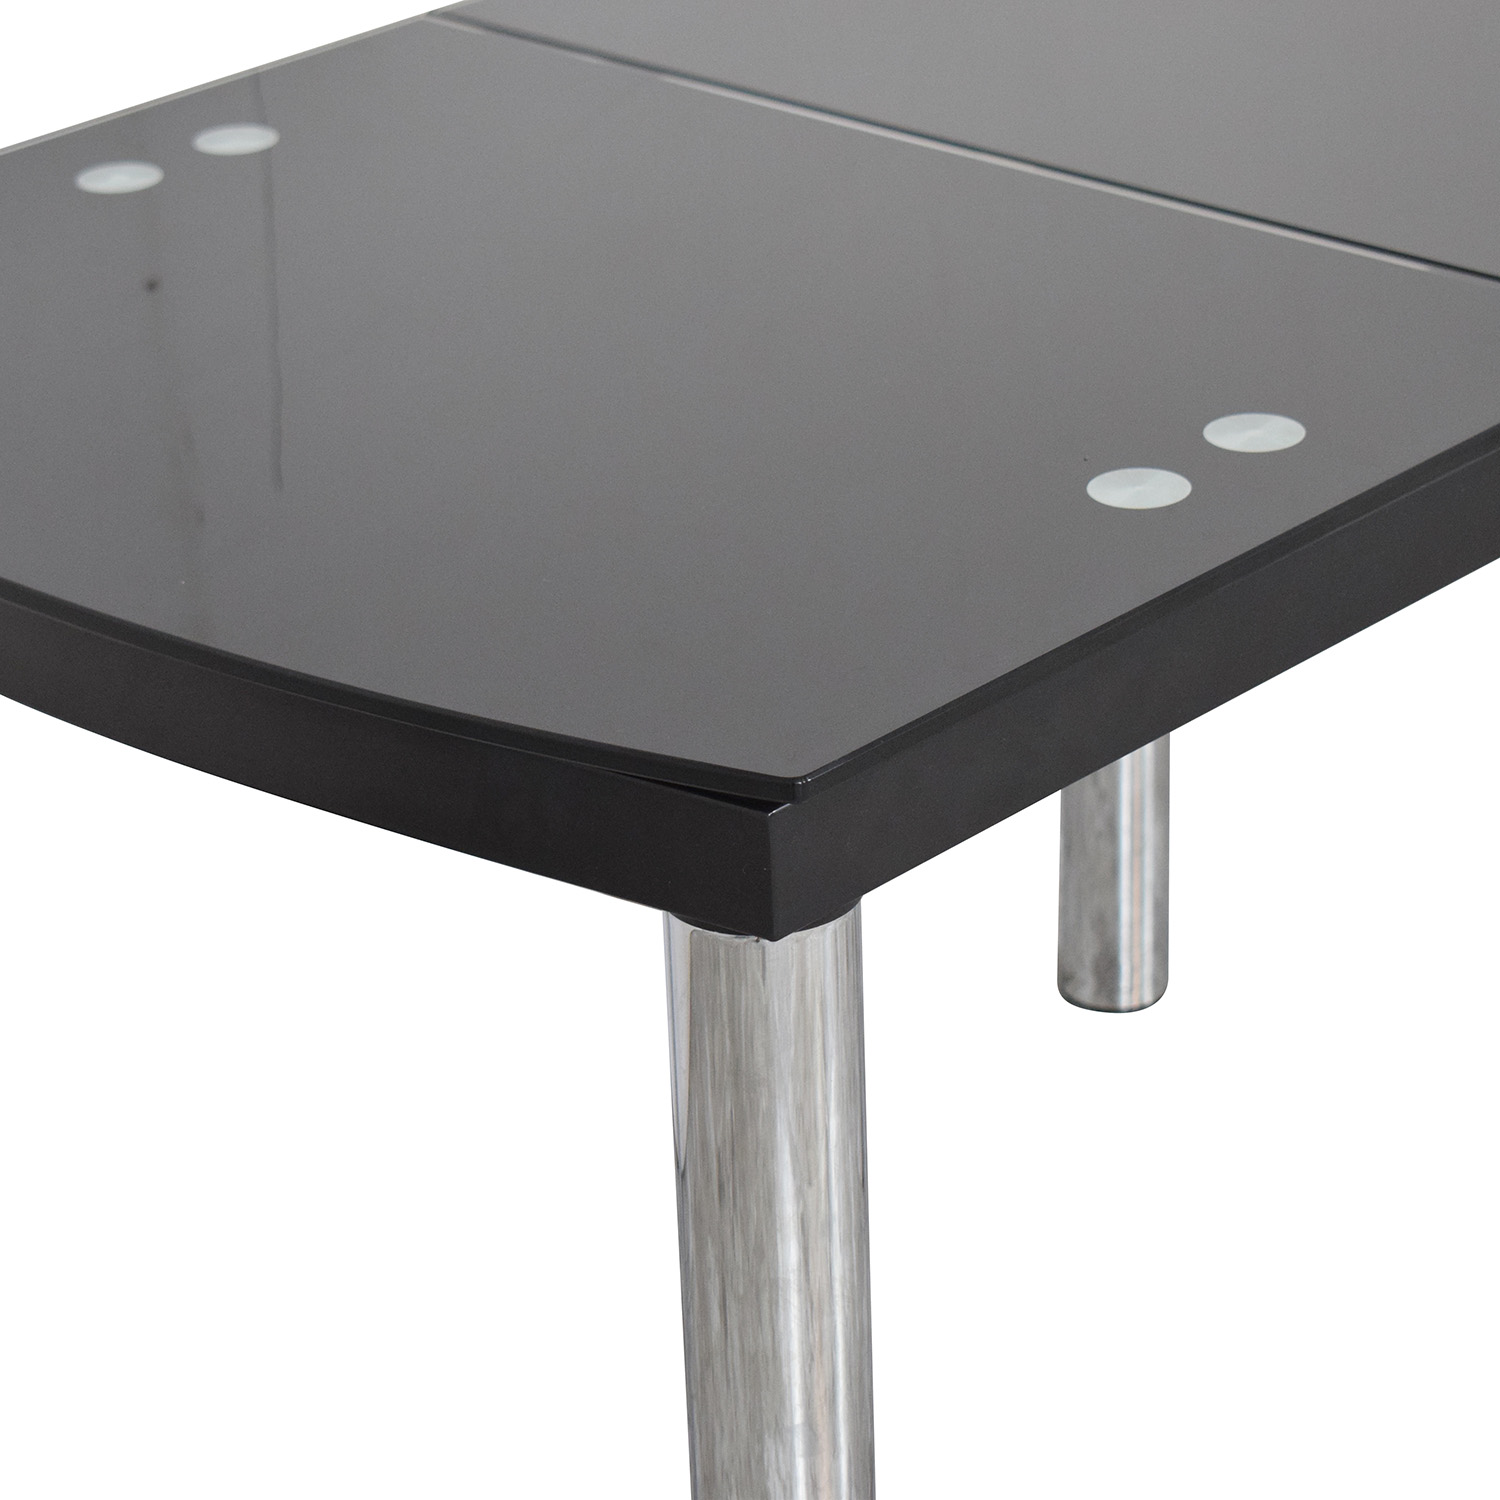 Structube Structube Extendable Dining Table nyc